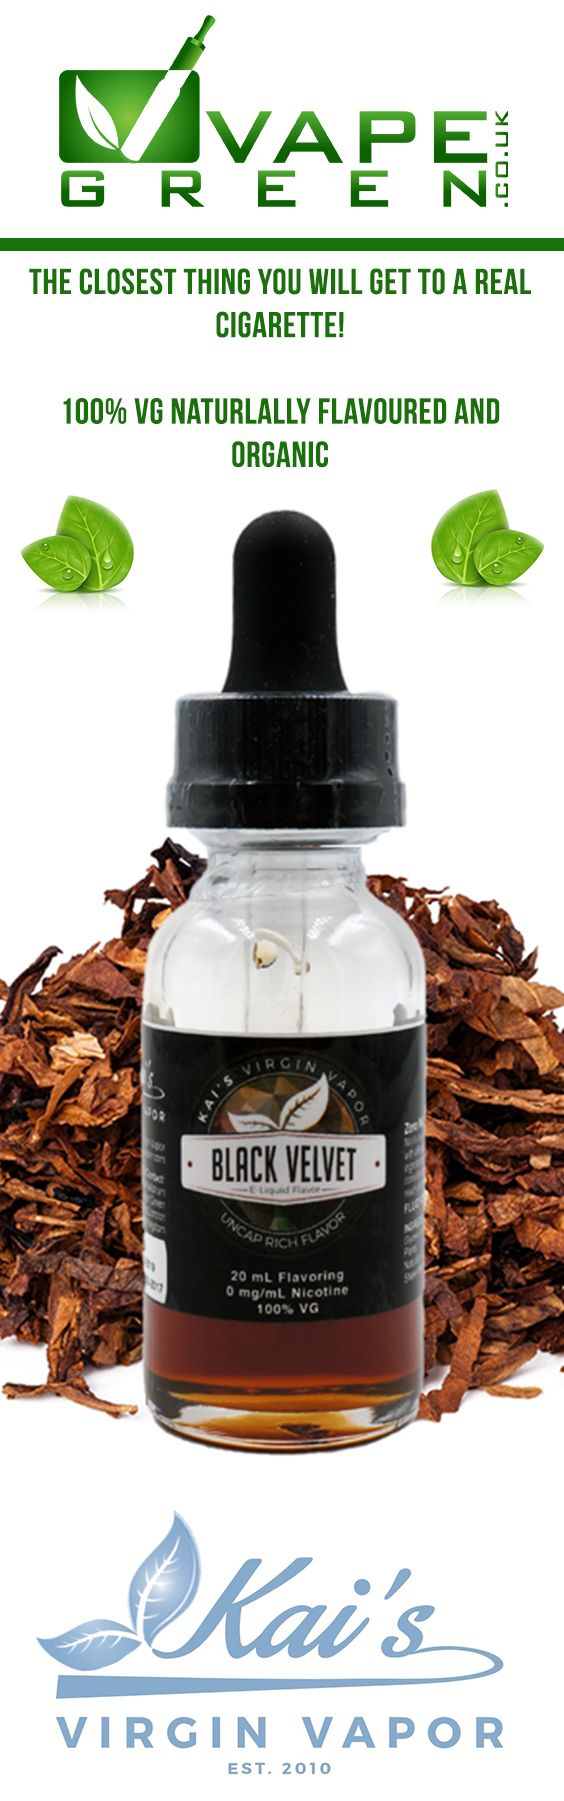 This is one of the best, if not the best tobacco flavour out there! Made from real tobacco extract this 100% VG & Organic E-liquid is a must try if you have cravings for a good tobacco vape. #vape #vaping #eliquid #ejuice #tobacco #cigarette #100vg #organic #kaisvirginvapor #vapegreen #vapeuk #ukvapers